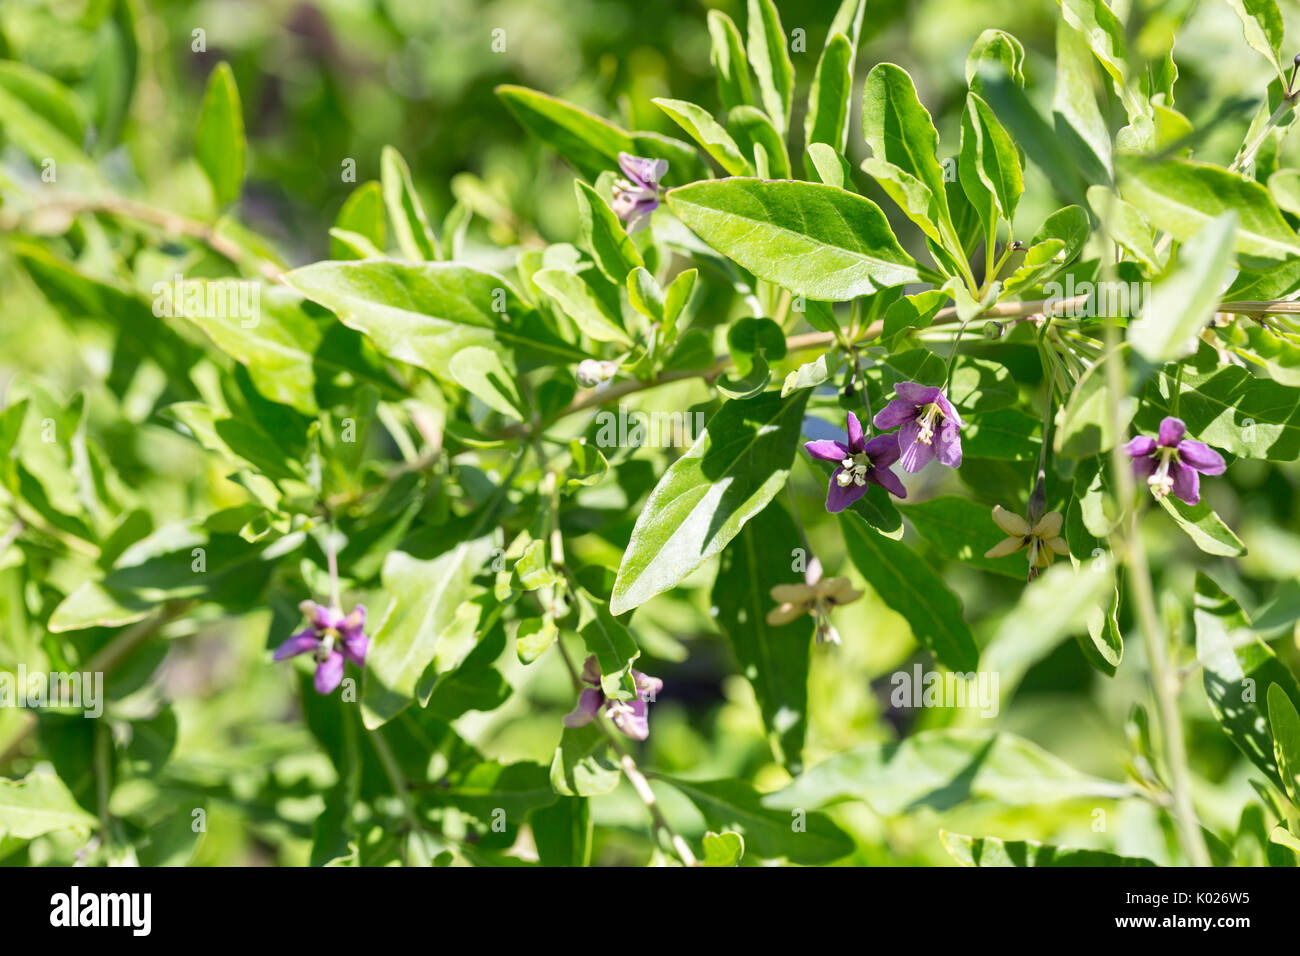 Goji Berry Plant High Resolution Stock Photography And Images Alamy